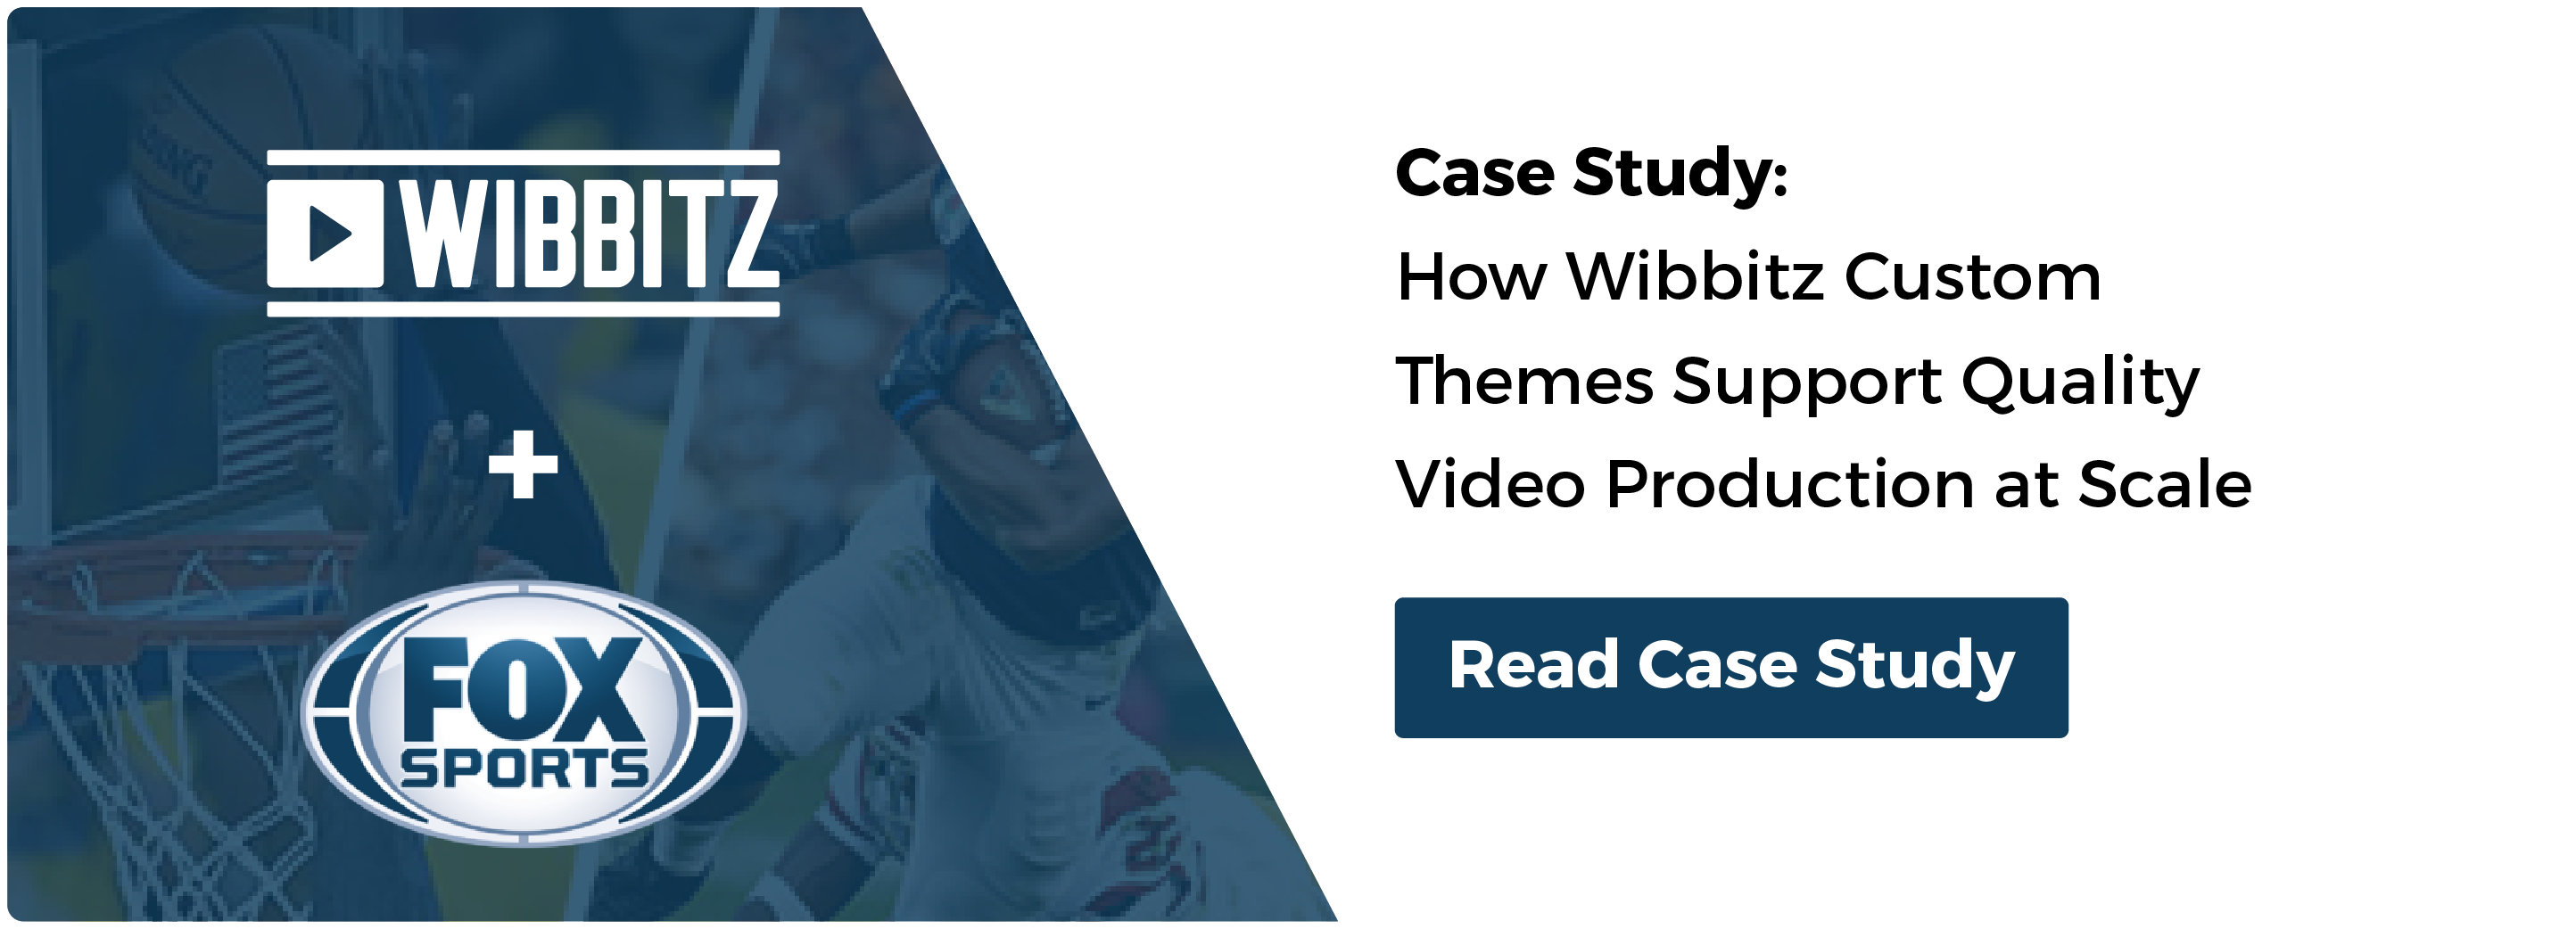 FOX SPORTS CASE STUDY: How Wibbitz Custom Themes Support Quality Video Production at Scale